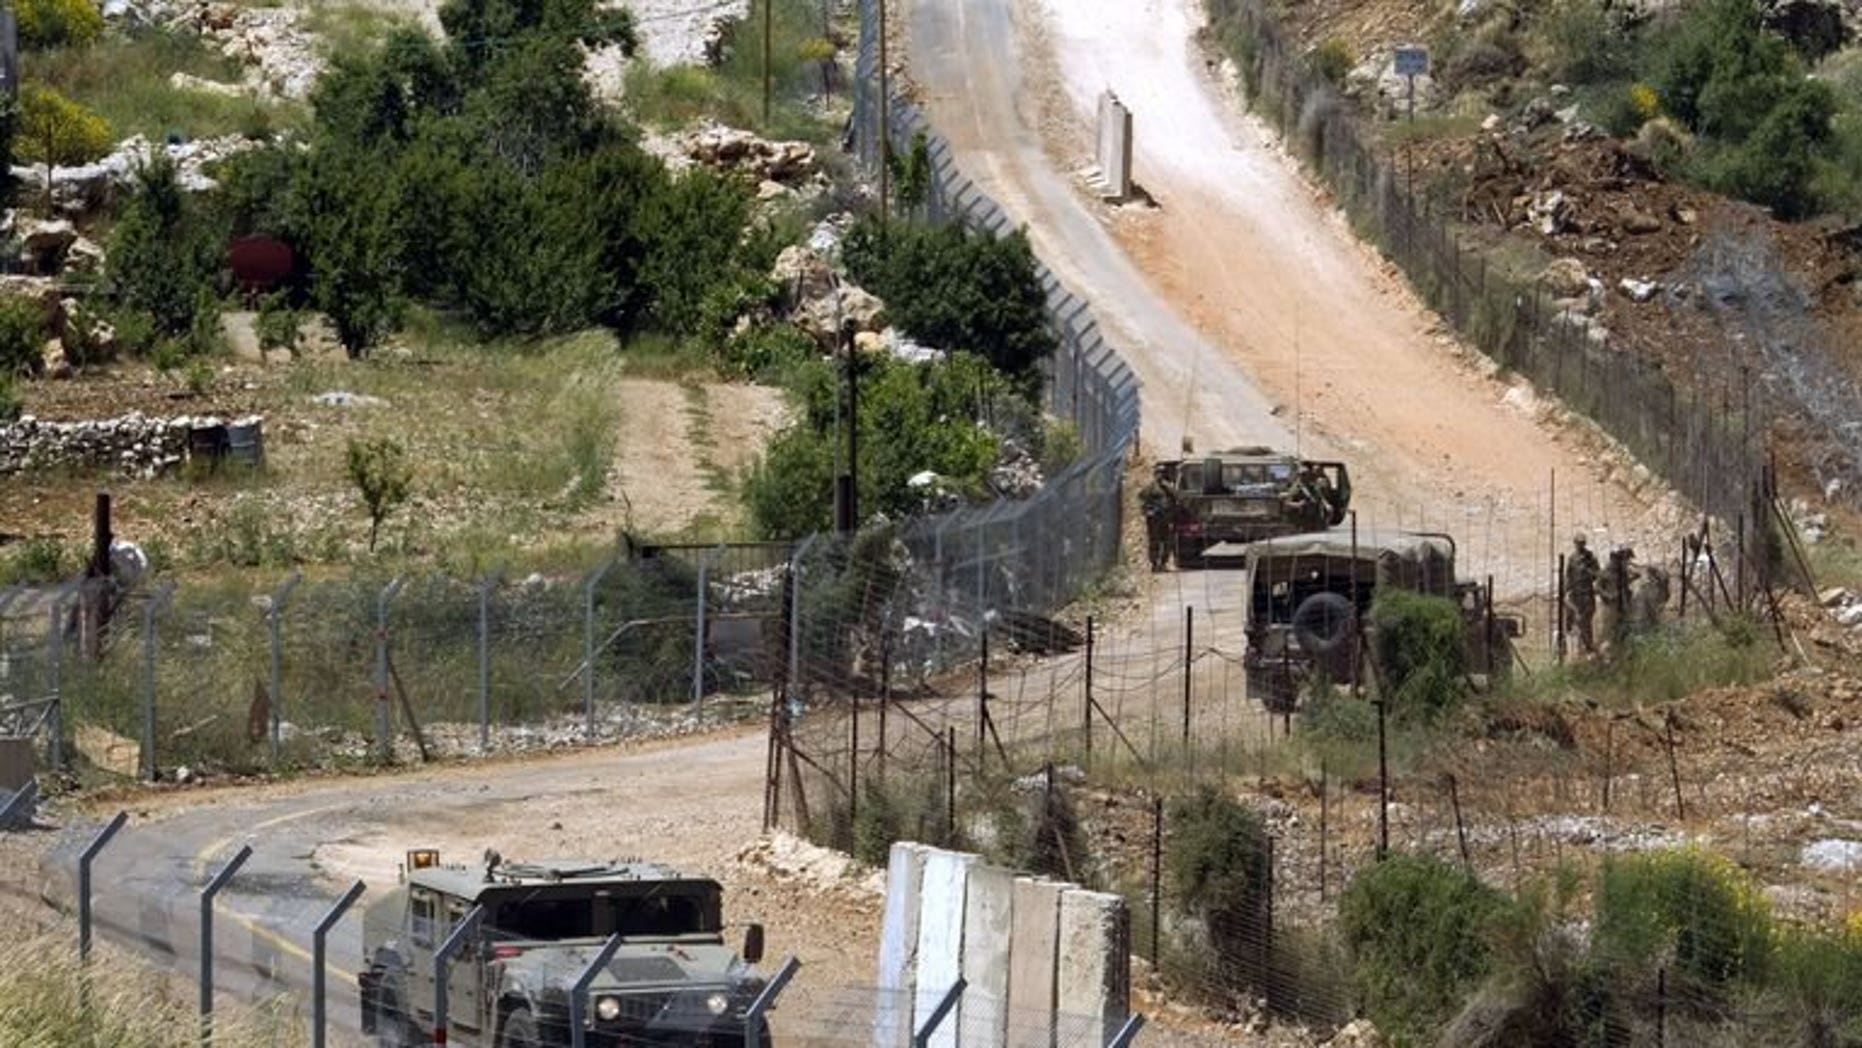 Israeli soldiers patrol the border fence between the Golan Heights and Syria next to the Druze village of Majdal Shams, on June 3, 2011. The Israeli military has confirmed that mortar fire from inside war-torn Syria landed in the Golan Heights.